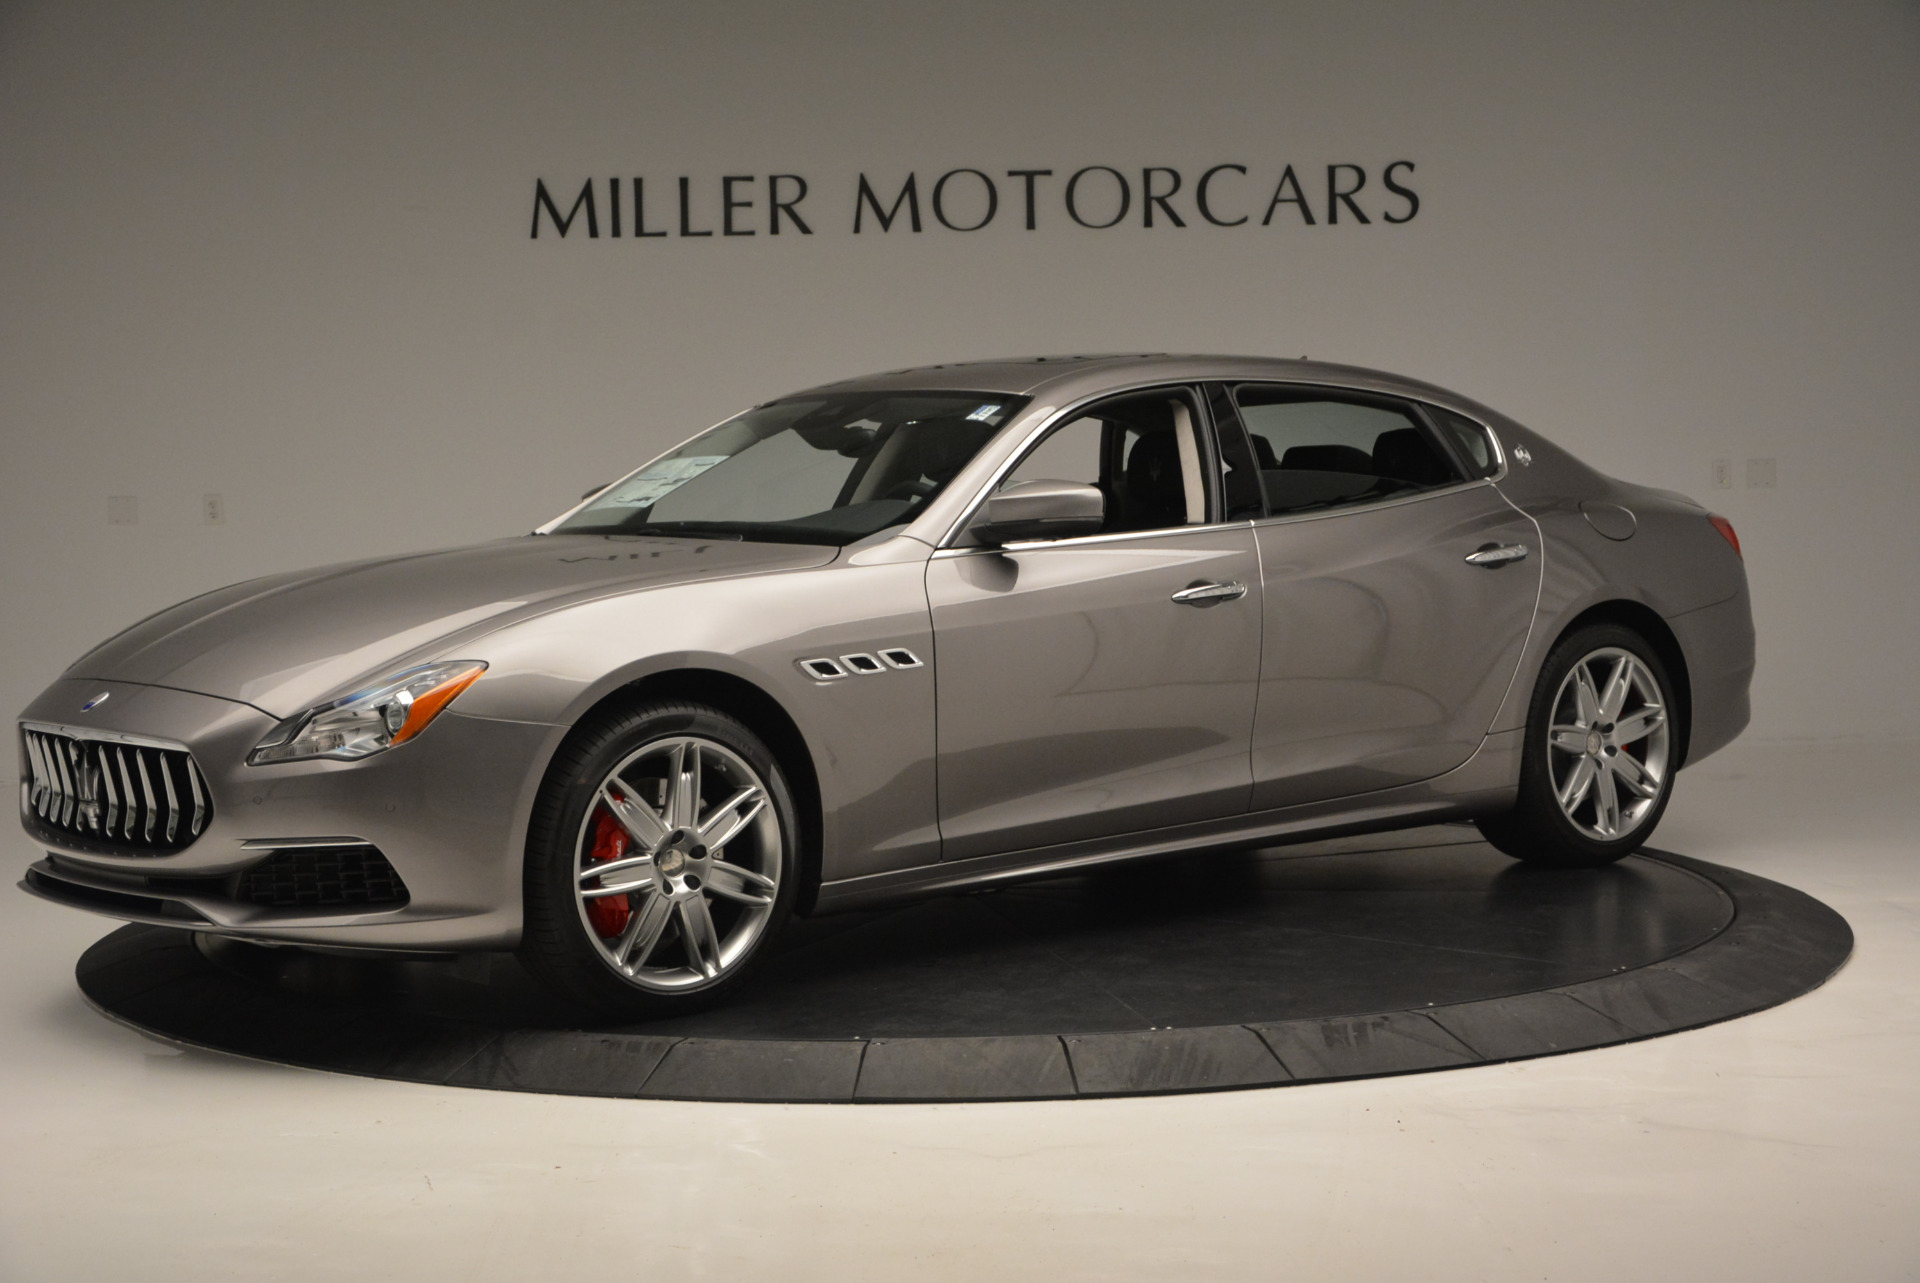 New 2017 Maserati Quattroporte S Q4 GranLusso For Sale In Westport, CT 611_p2